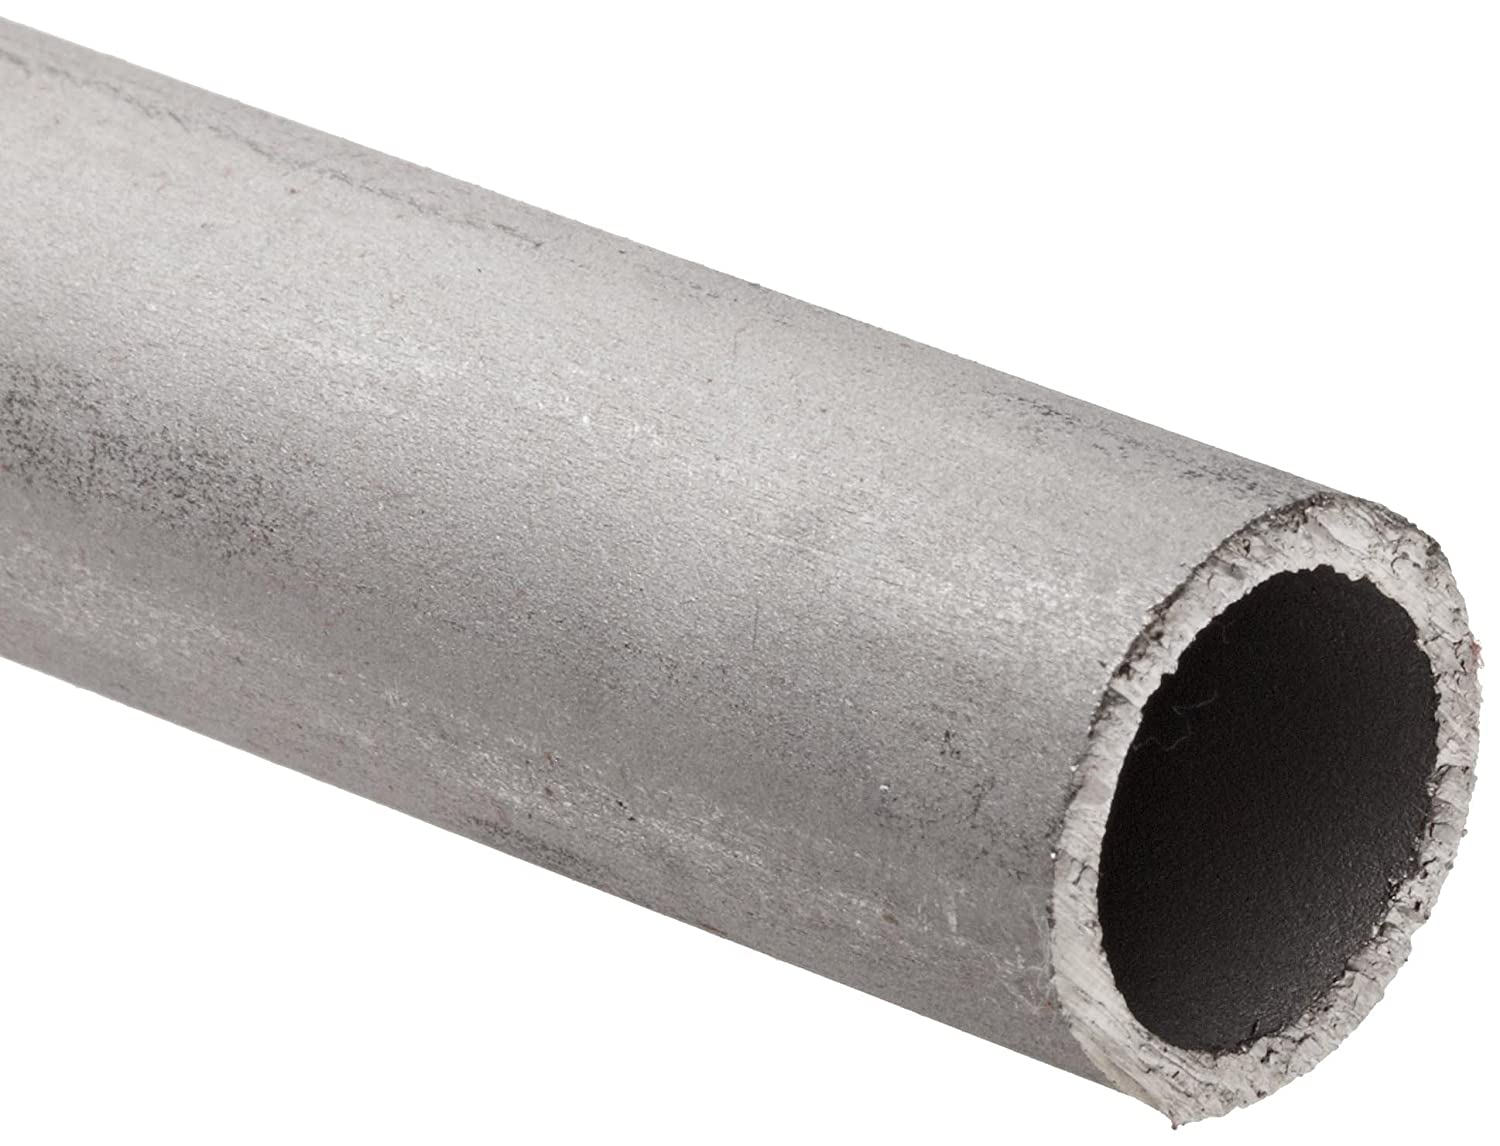 Stainless 304 Pipe Schedule 10 1.5 Nominal 1.682 ID 1.9 OD 0.11 Wall 12 Length